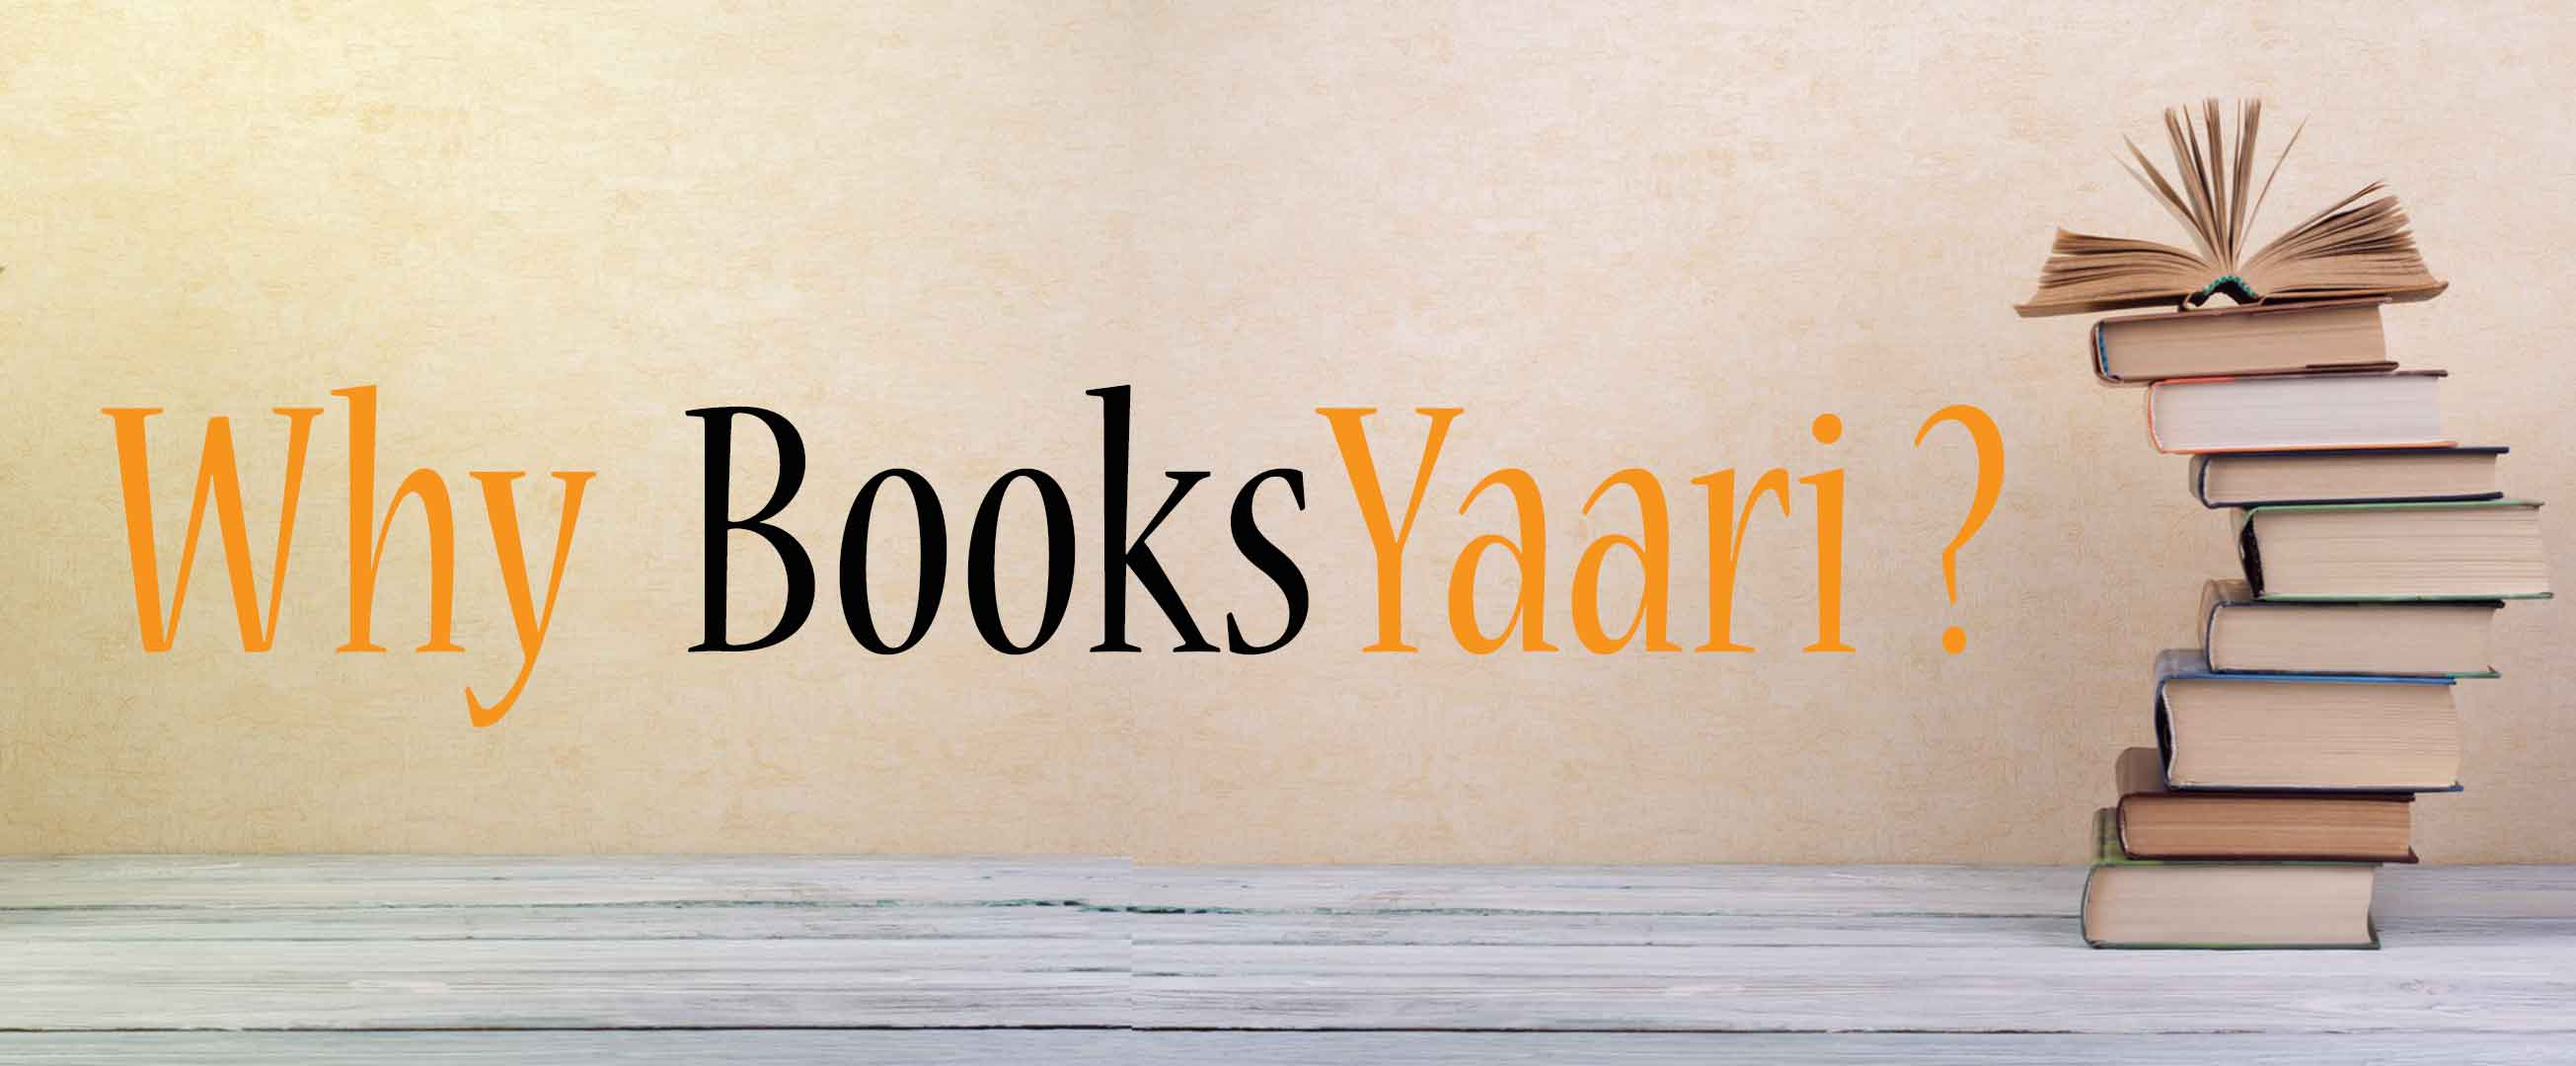 Why BooksYaari ?